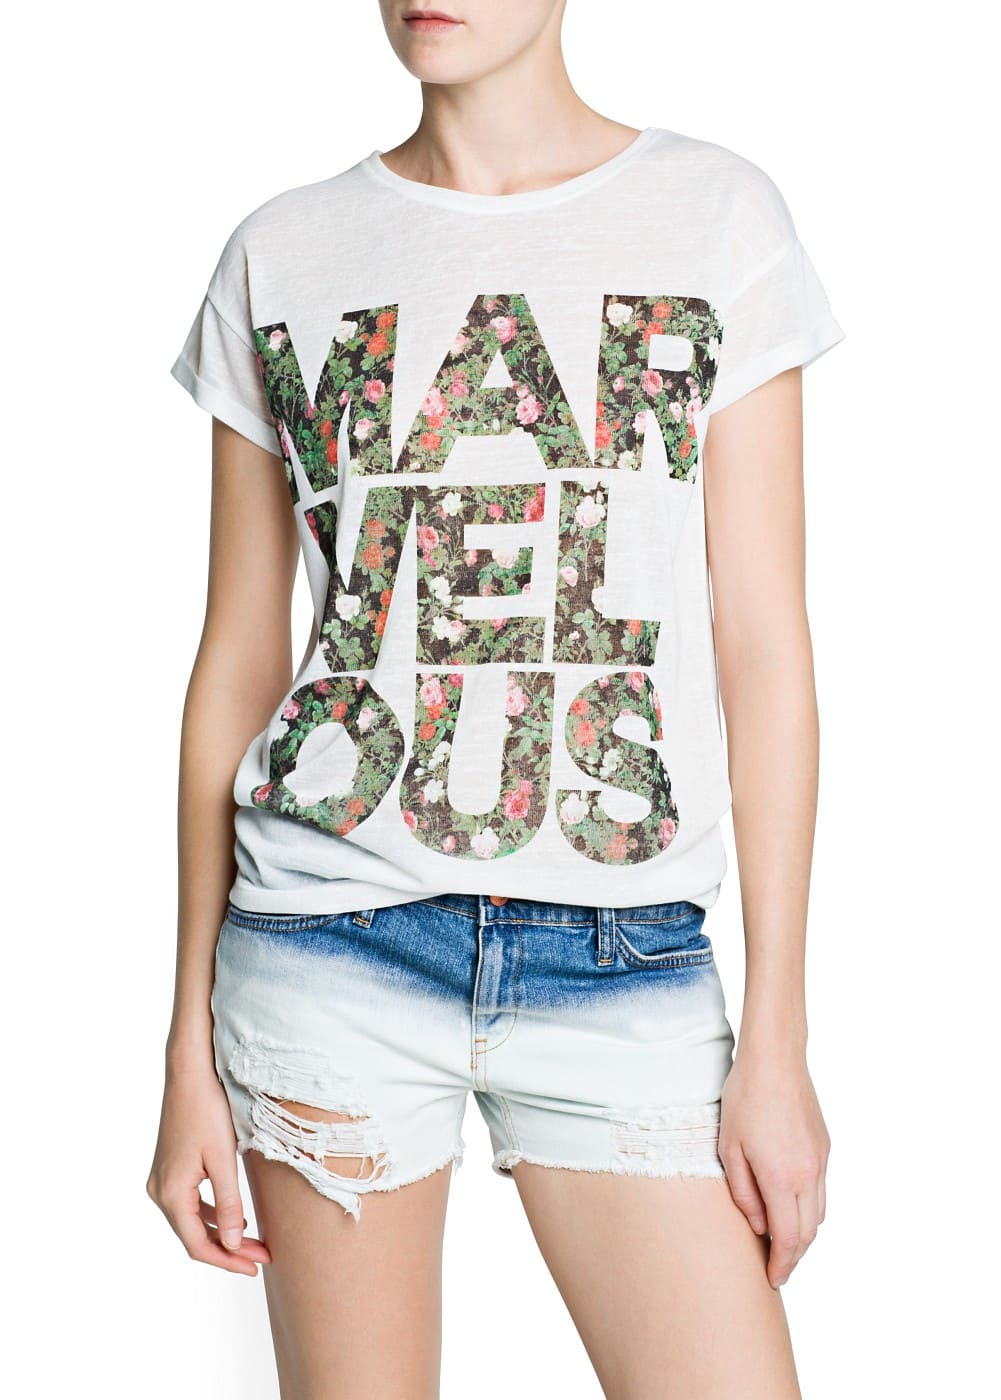 Floral typographic print t-shirt